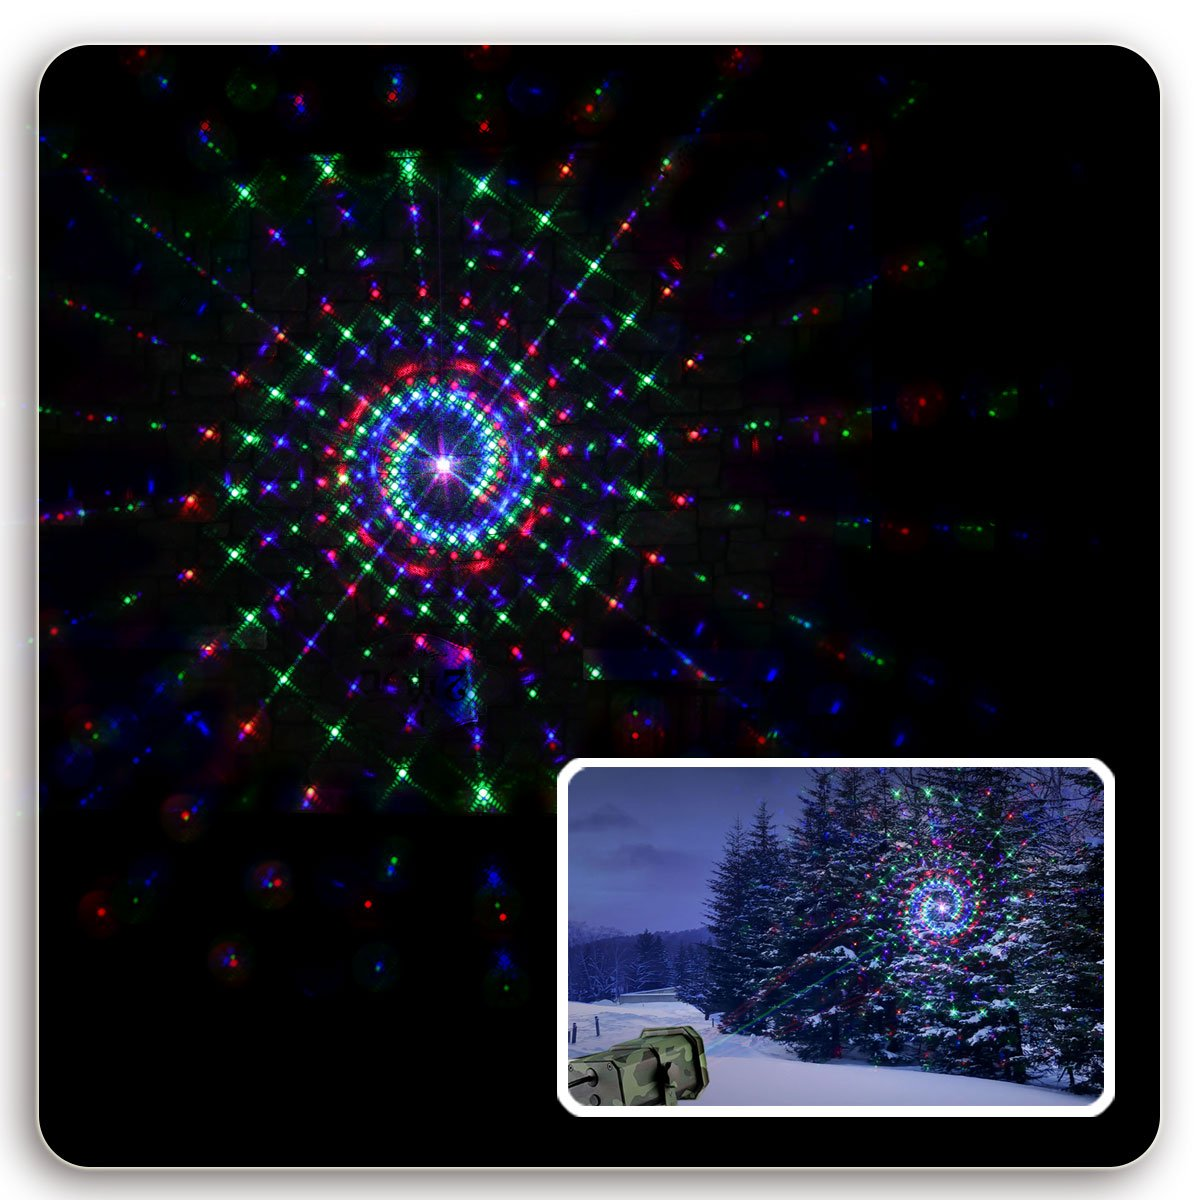 EVA Logik Outdoor Waterproof Laser Projector Light, Moving RGB 20 Patterns, with RF Remote Control & Timer, Perfect for Lawn, Party, Garden Decoration by Eva logik (Image #9)